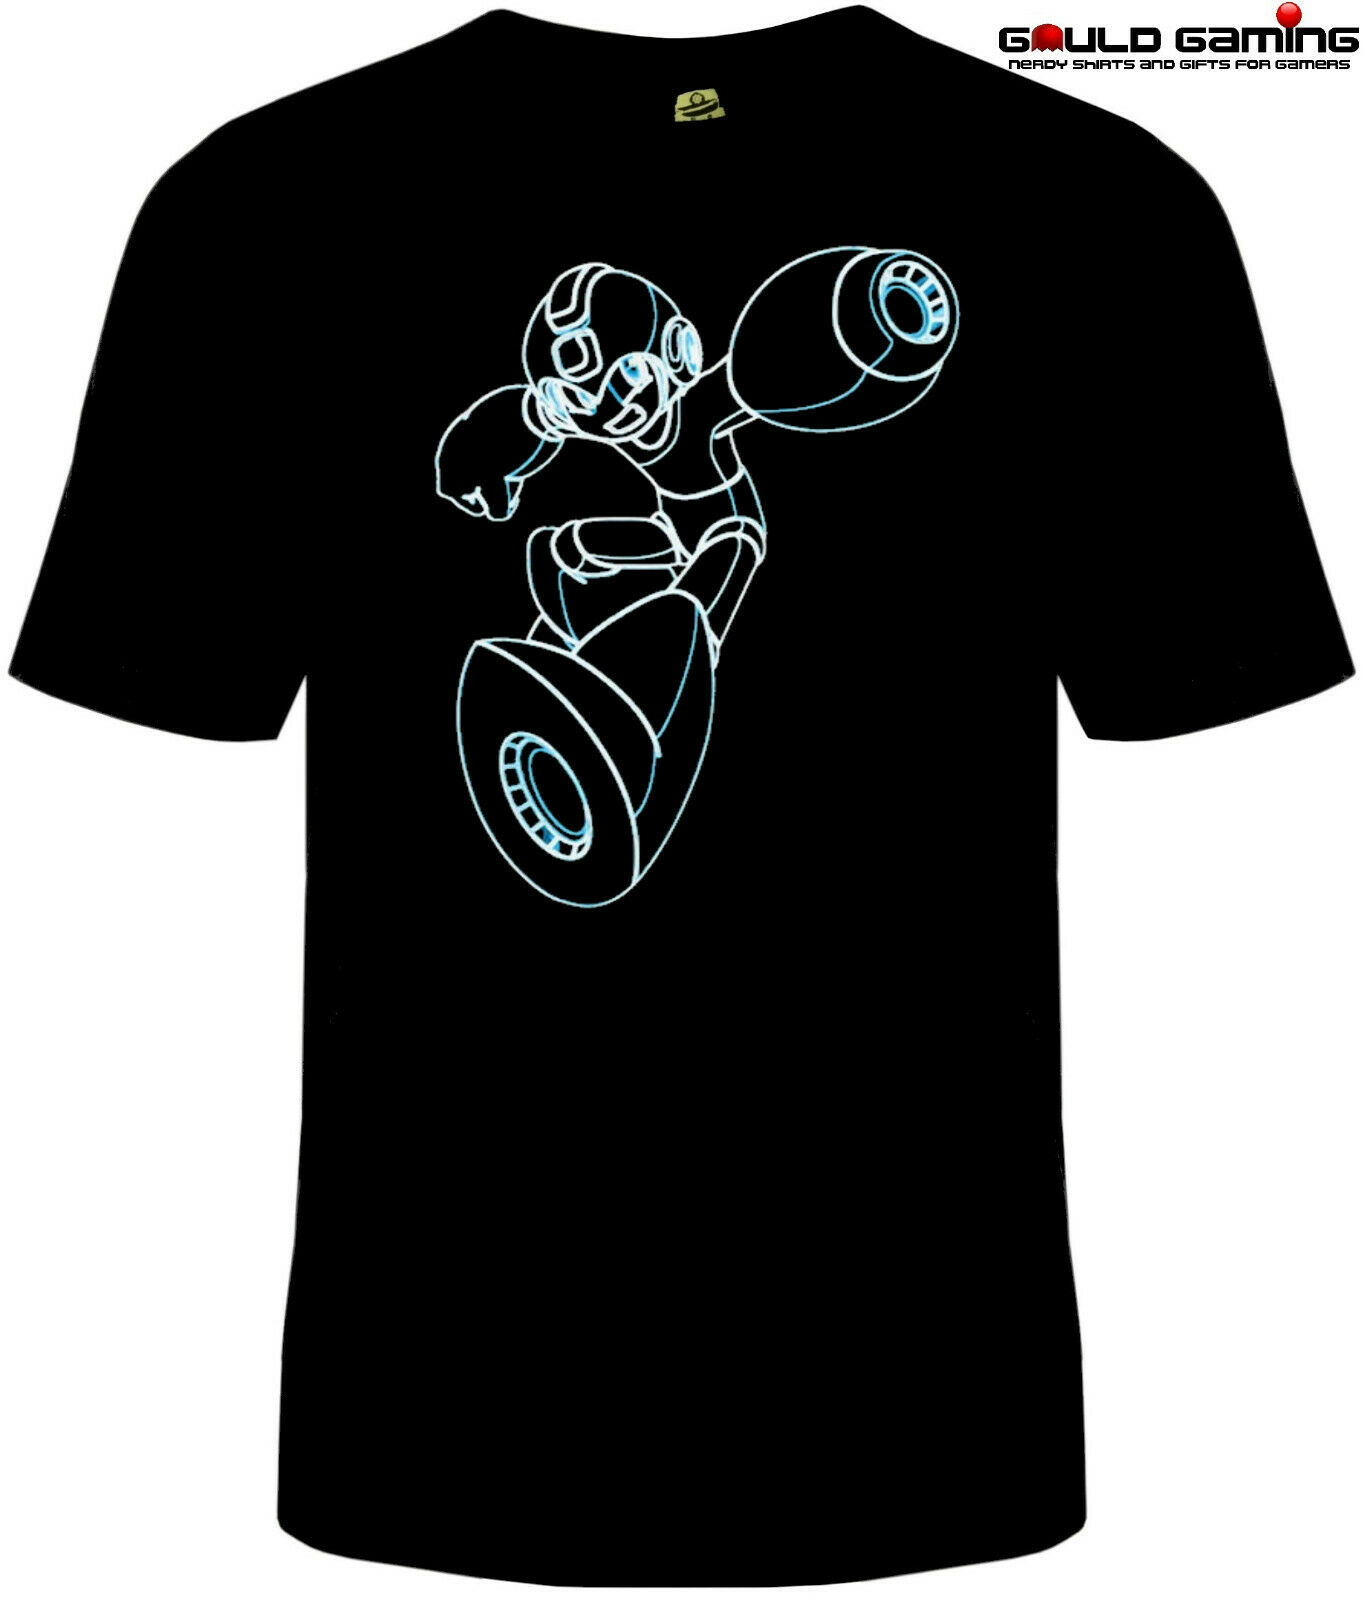 Mega Man Tron T Shirt Unisex Adult Funny Sizes NES Quickman Video Game Neon New image